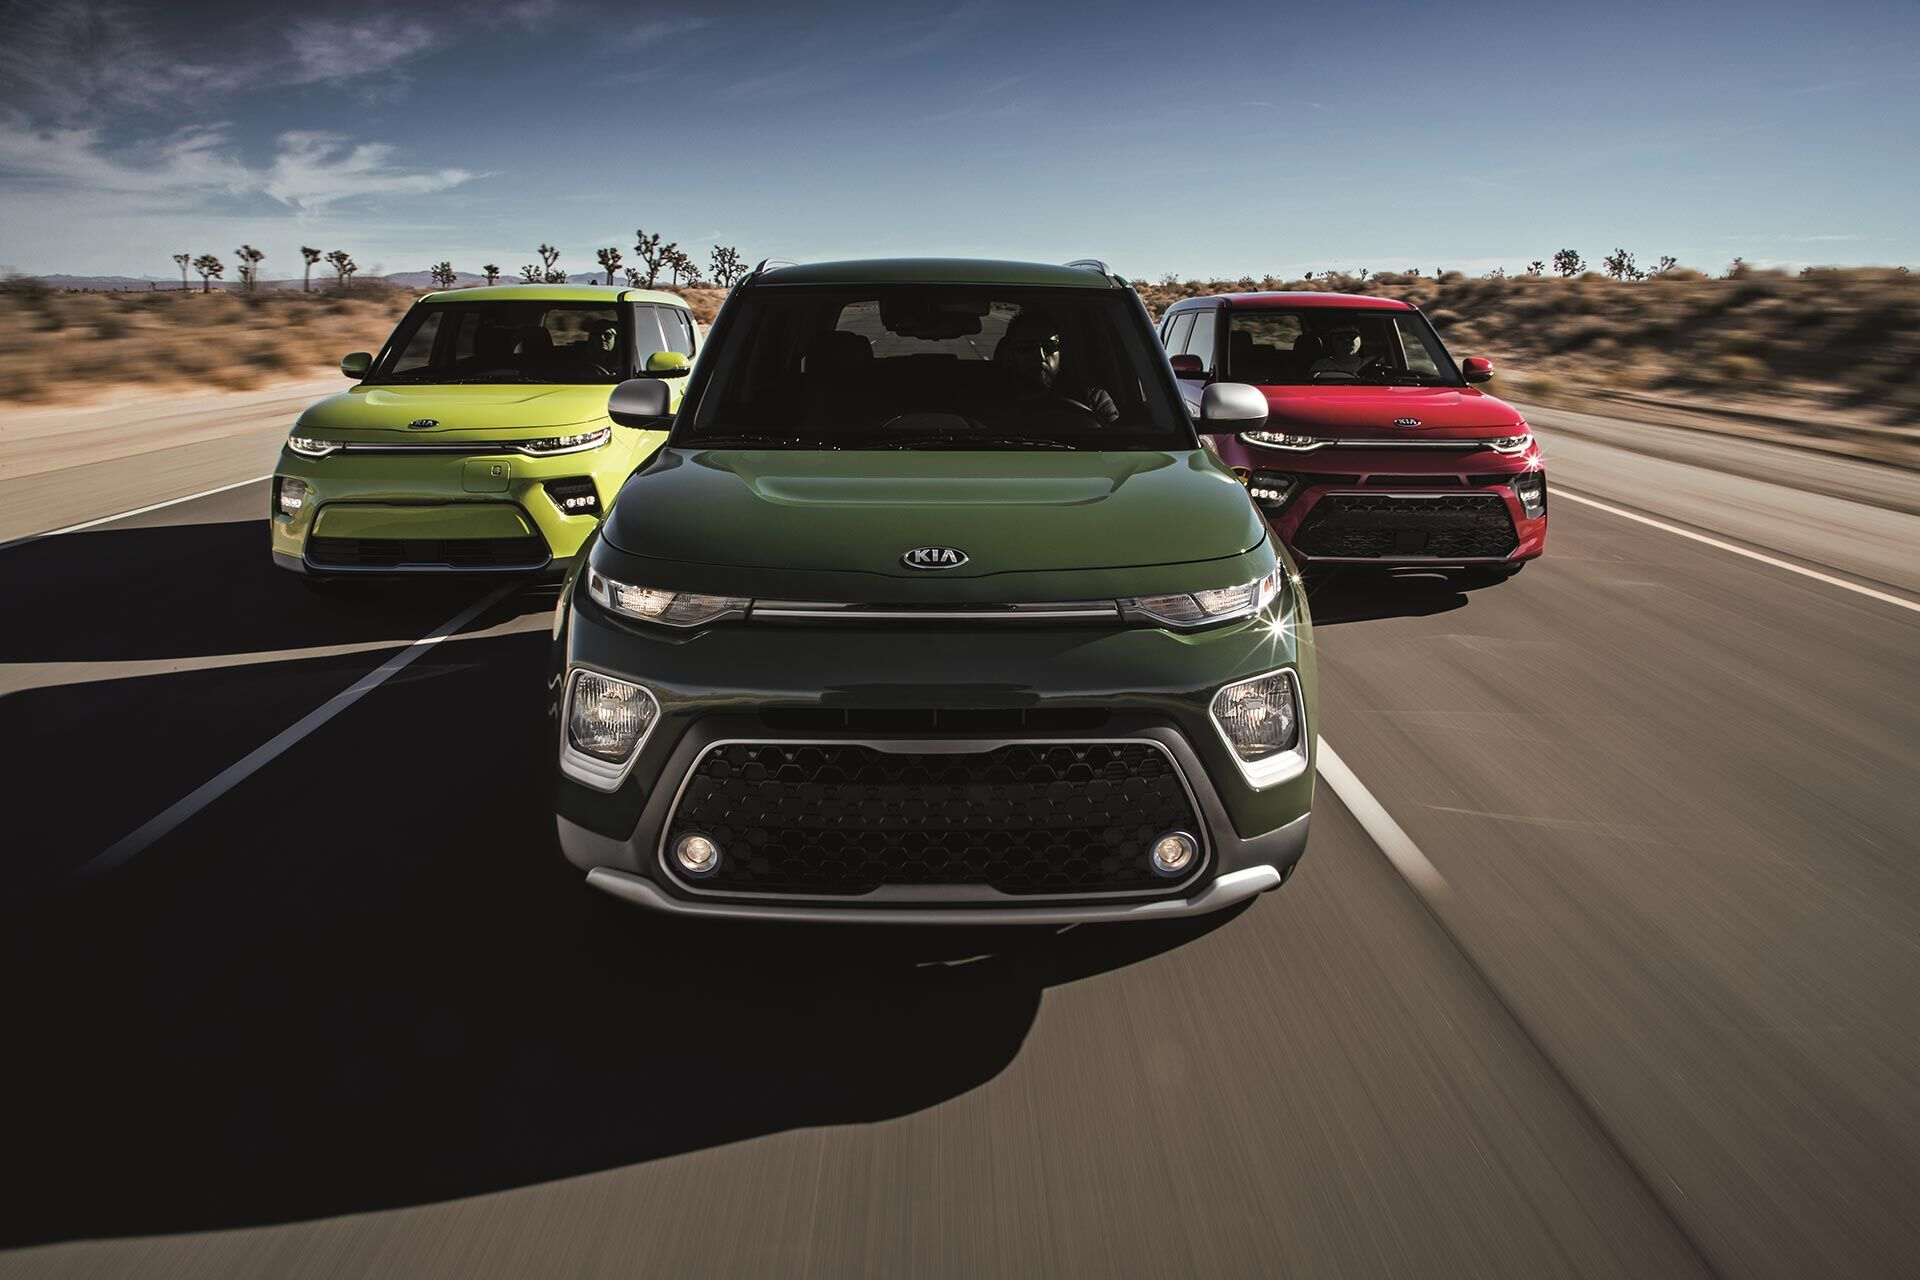 Three 2020 Kia Soul driving down the highway